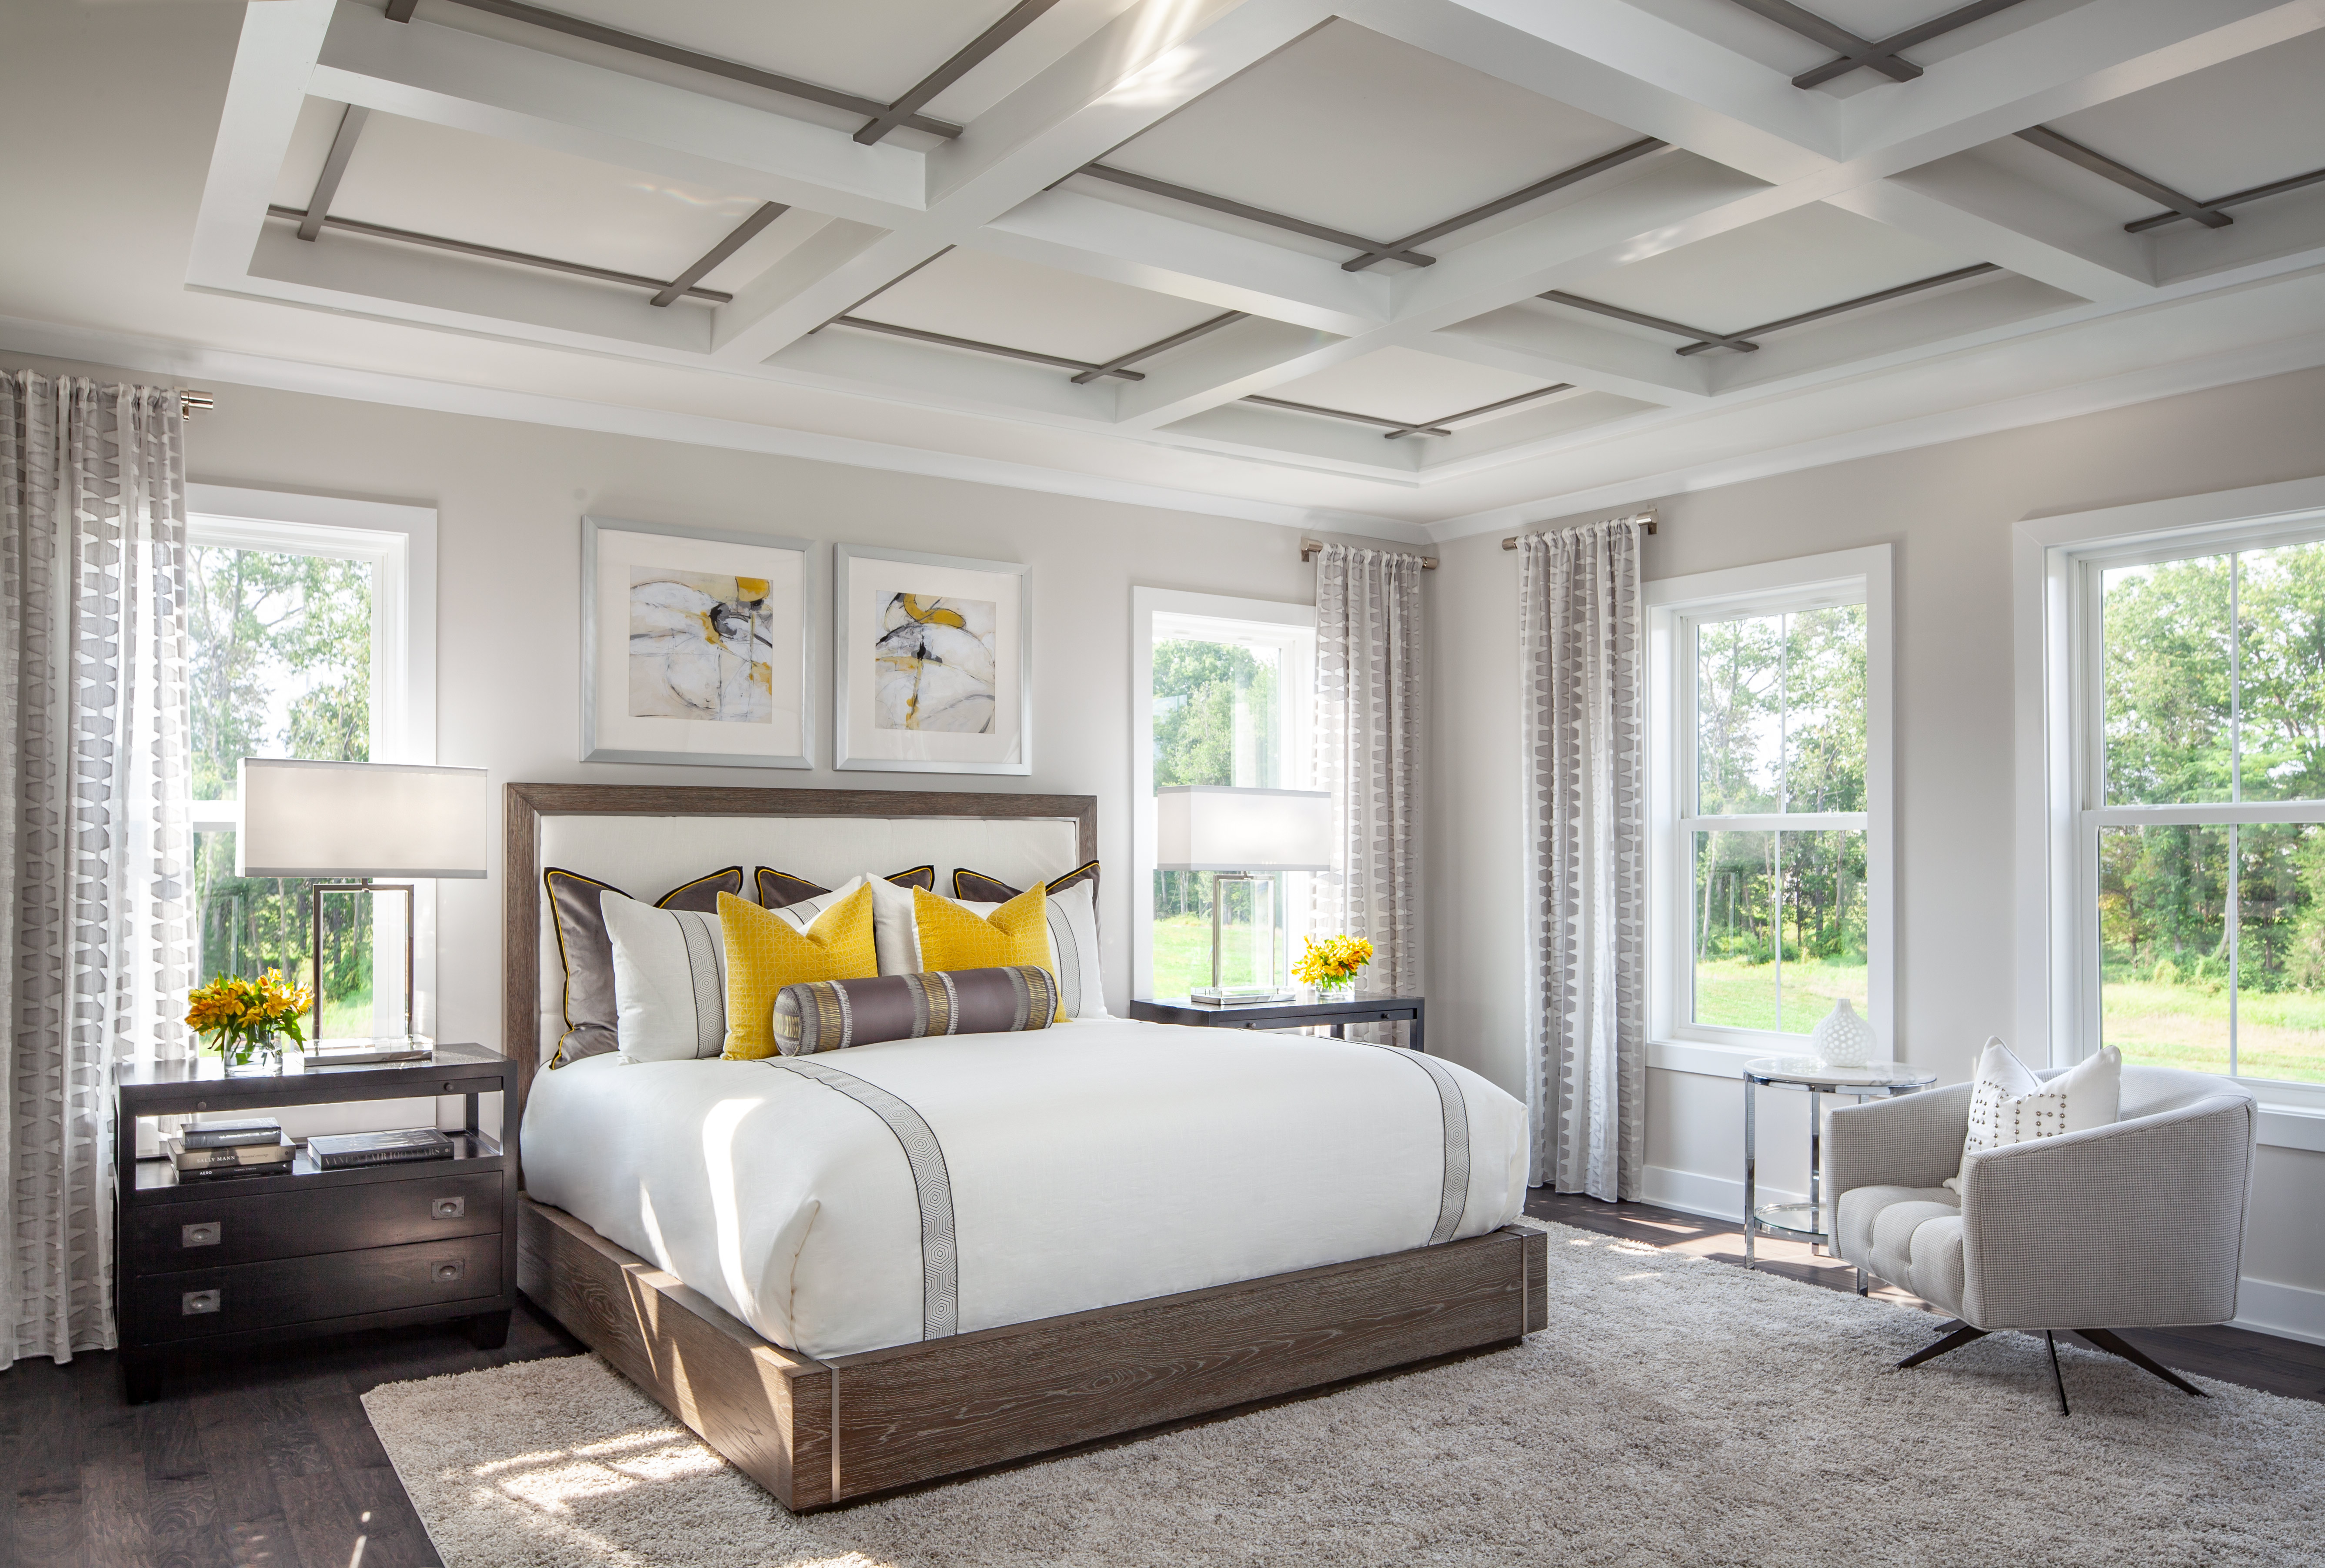 Small bedroom with yellow color accents.